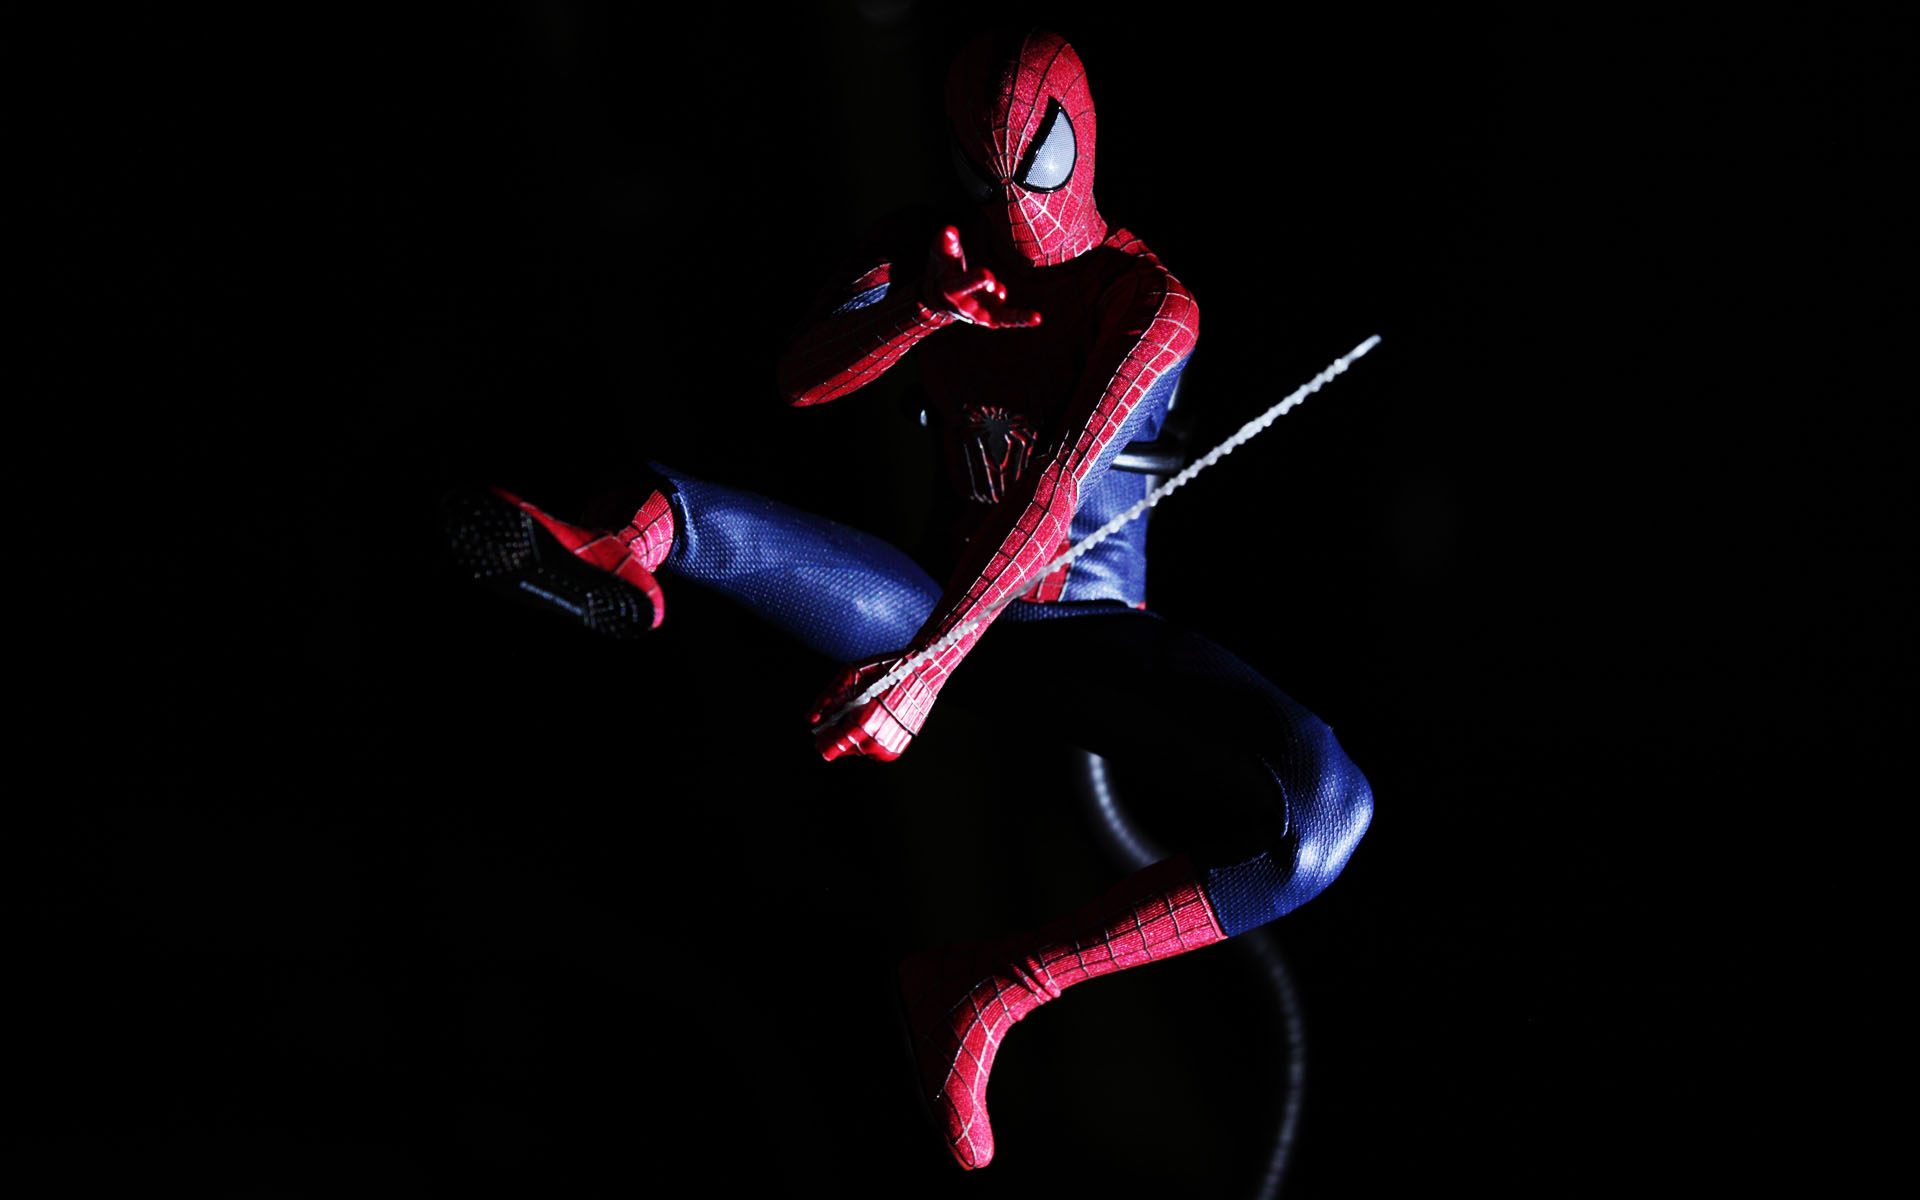 hot-toys-amazing-spider-man-2-spider-man-picture-02